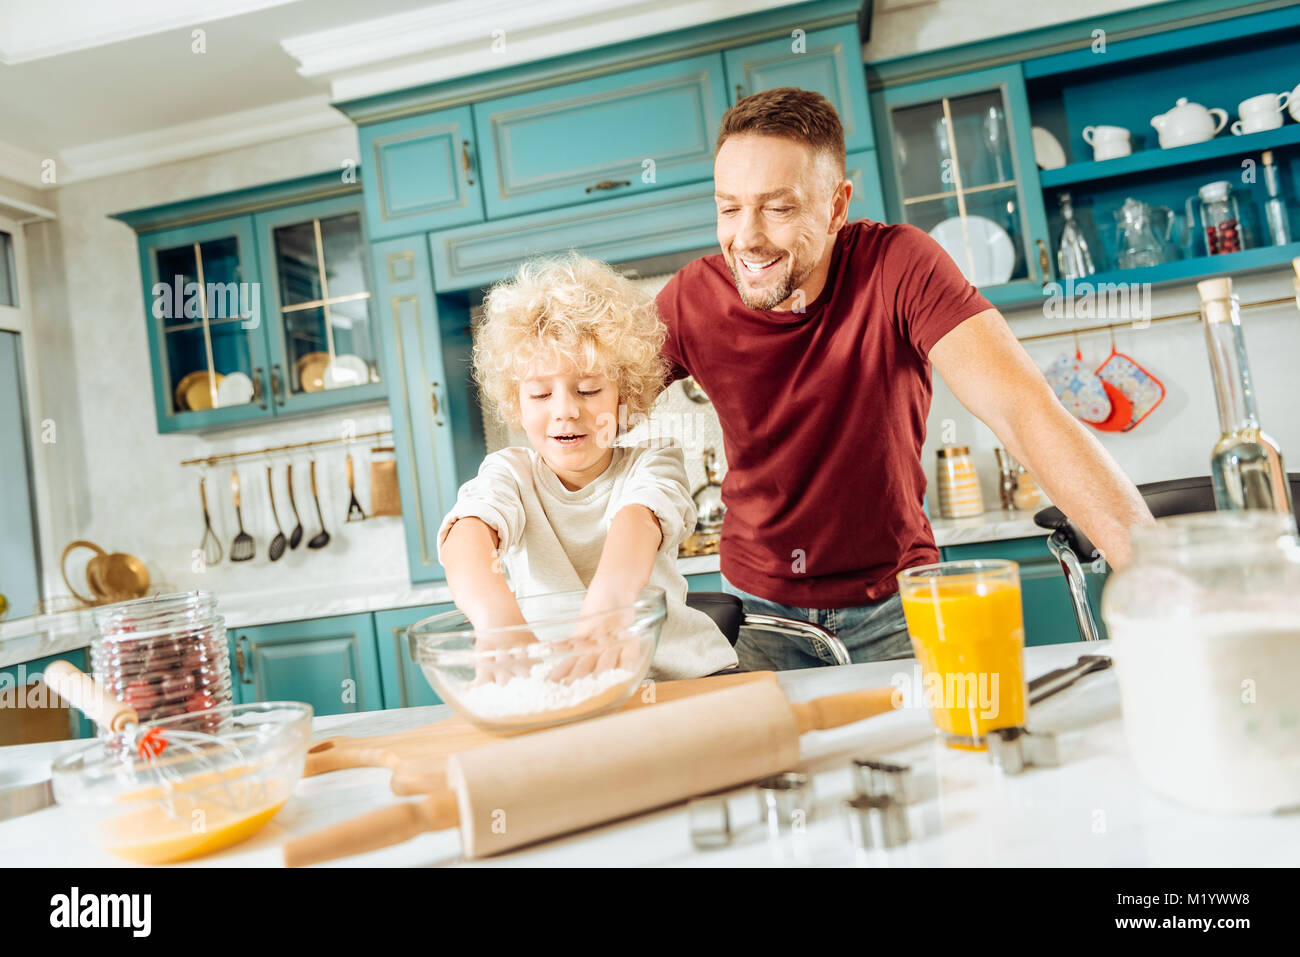 Nice delighted boy leaning to make dough - Stock Image